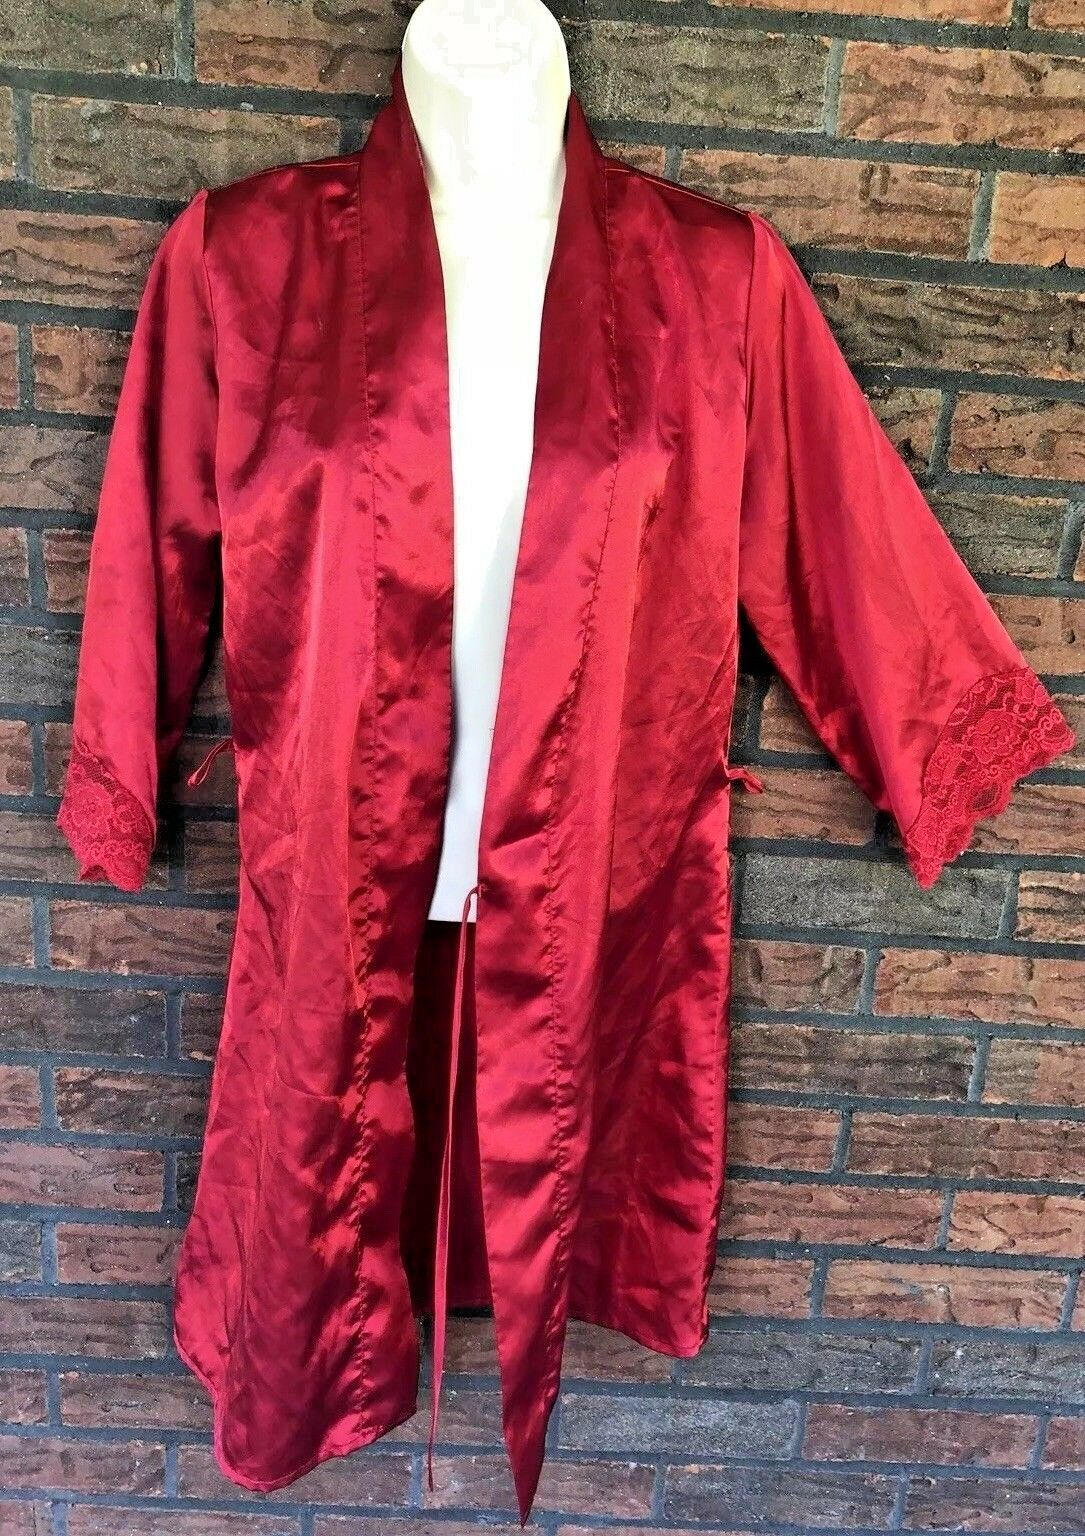 Frederick's of Hollywood Silky Satin Robe Small Red Lace Detail Glamour Housecoa - $19.80